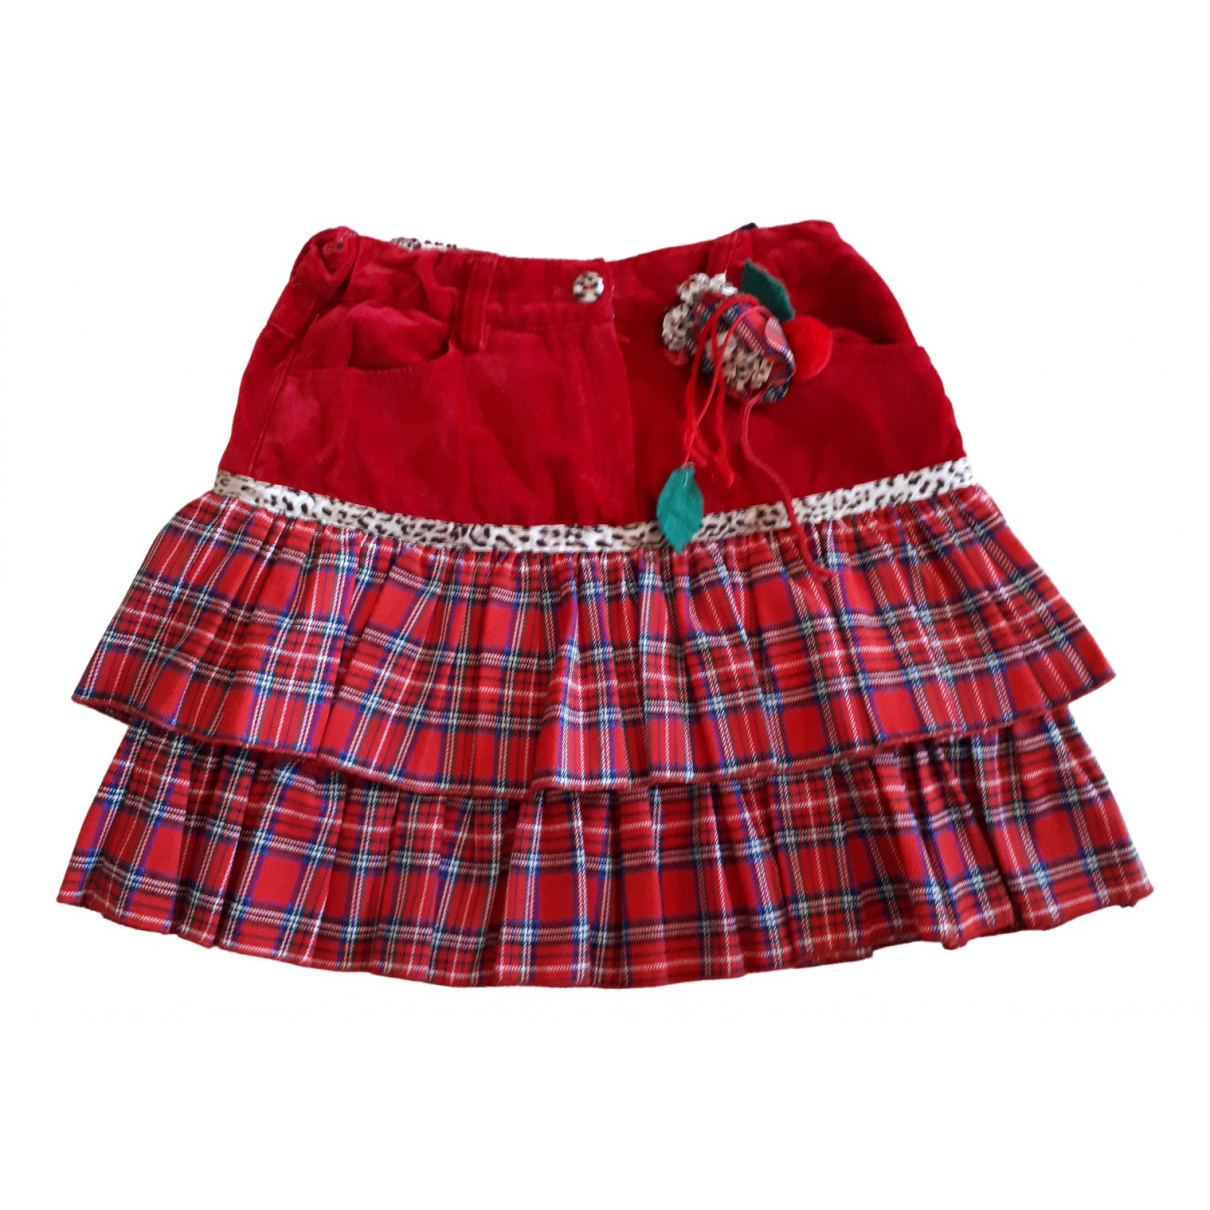 Monnalisa \N Red Cotton skirt for Kids 8 years - up to 128cm FR